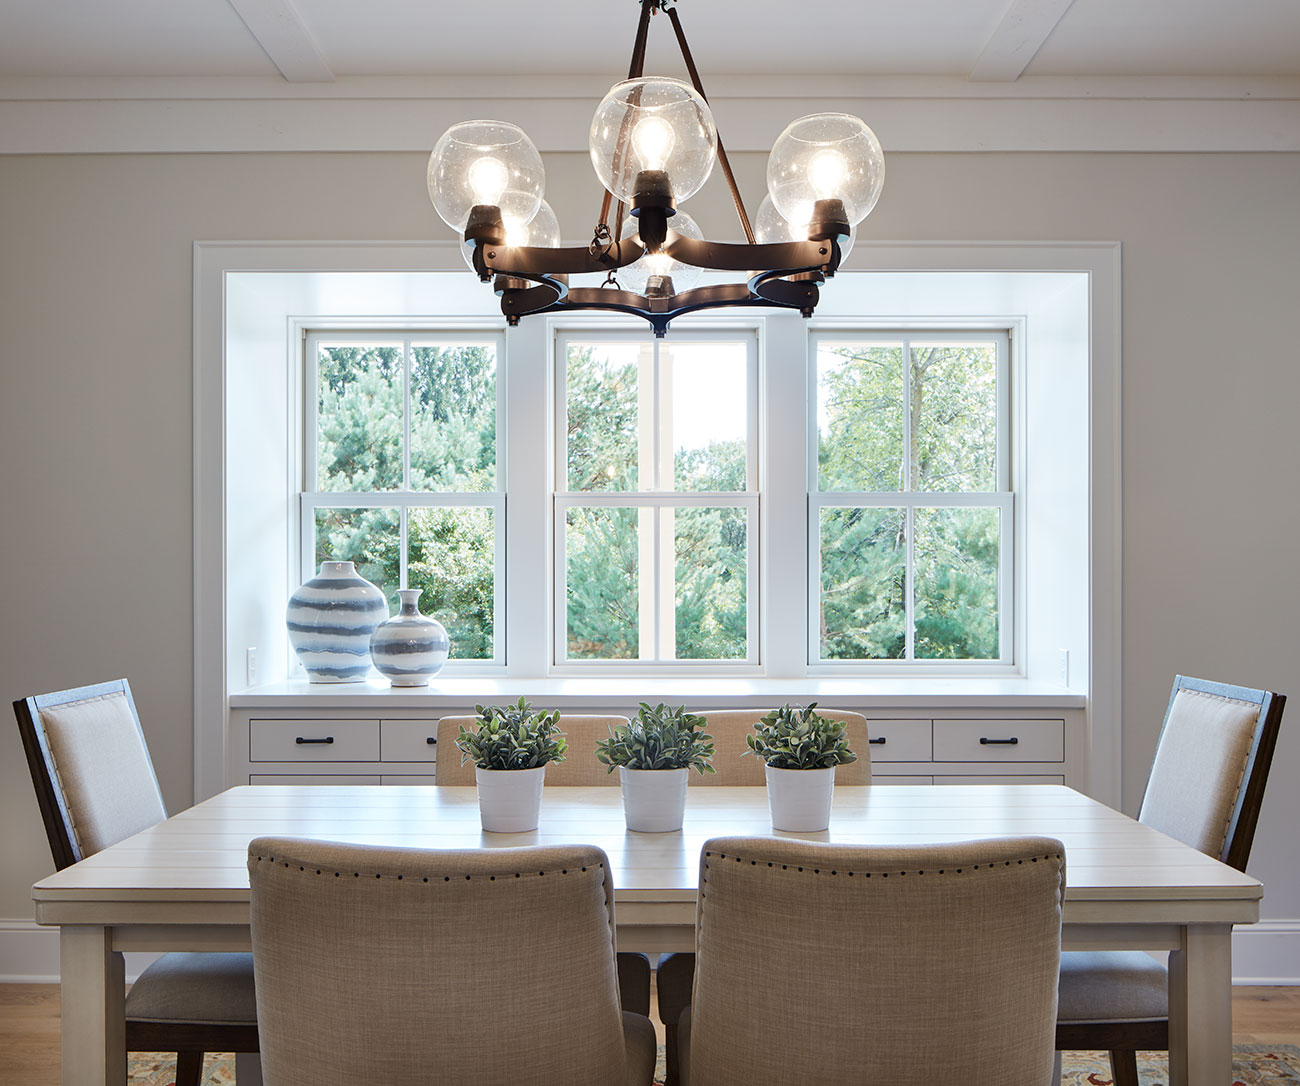 Dining Room Windows Cottage Style Decorating Renovating And Entertaining Ideas For Indoors And Out